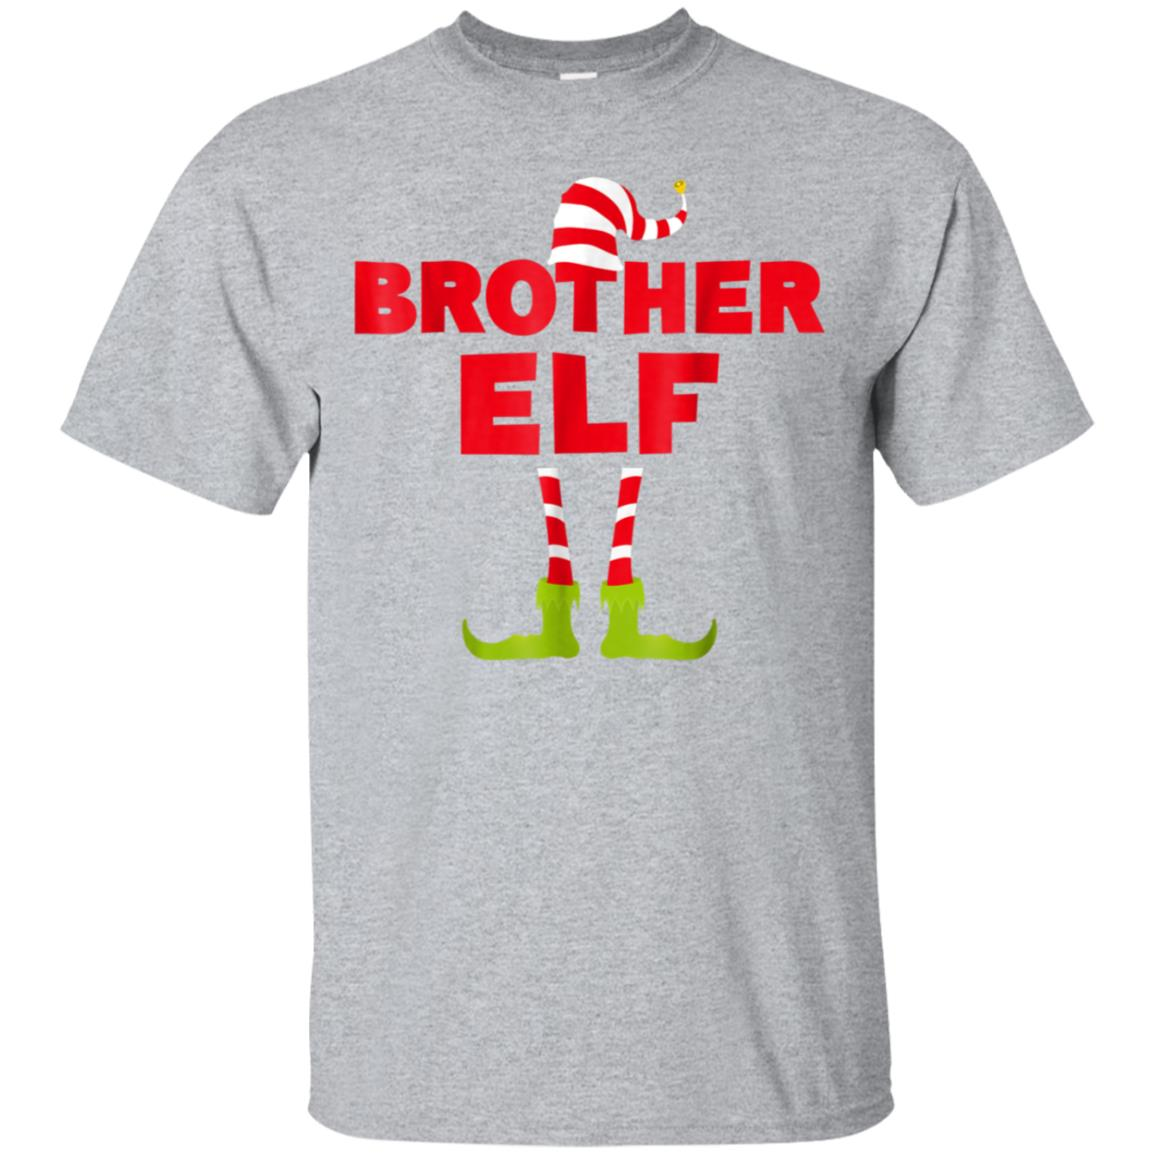 Brother Elf T-Shirt Funny Matching Christmas Costume Shirt 99promocode